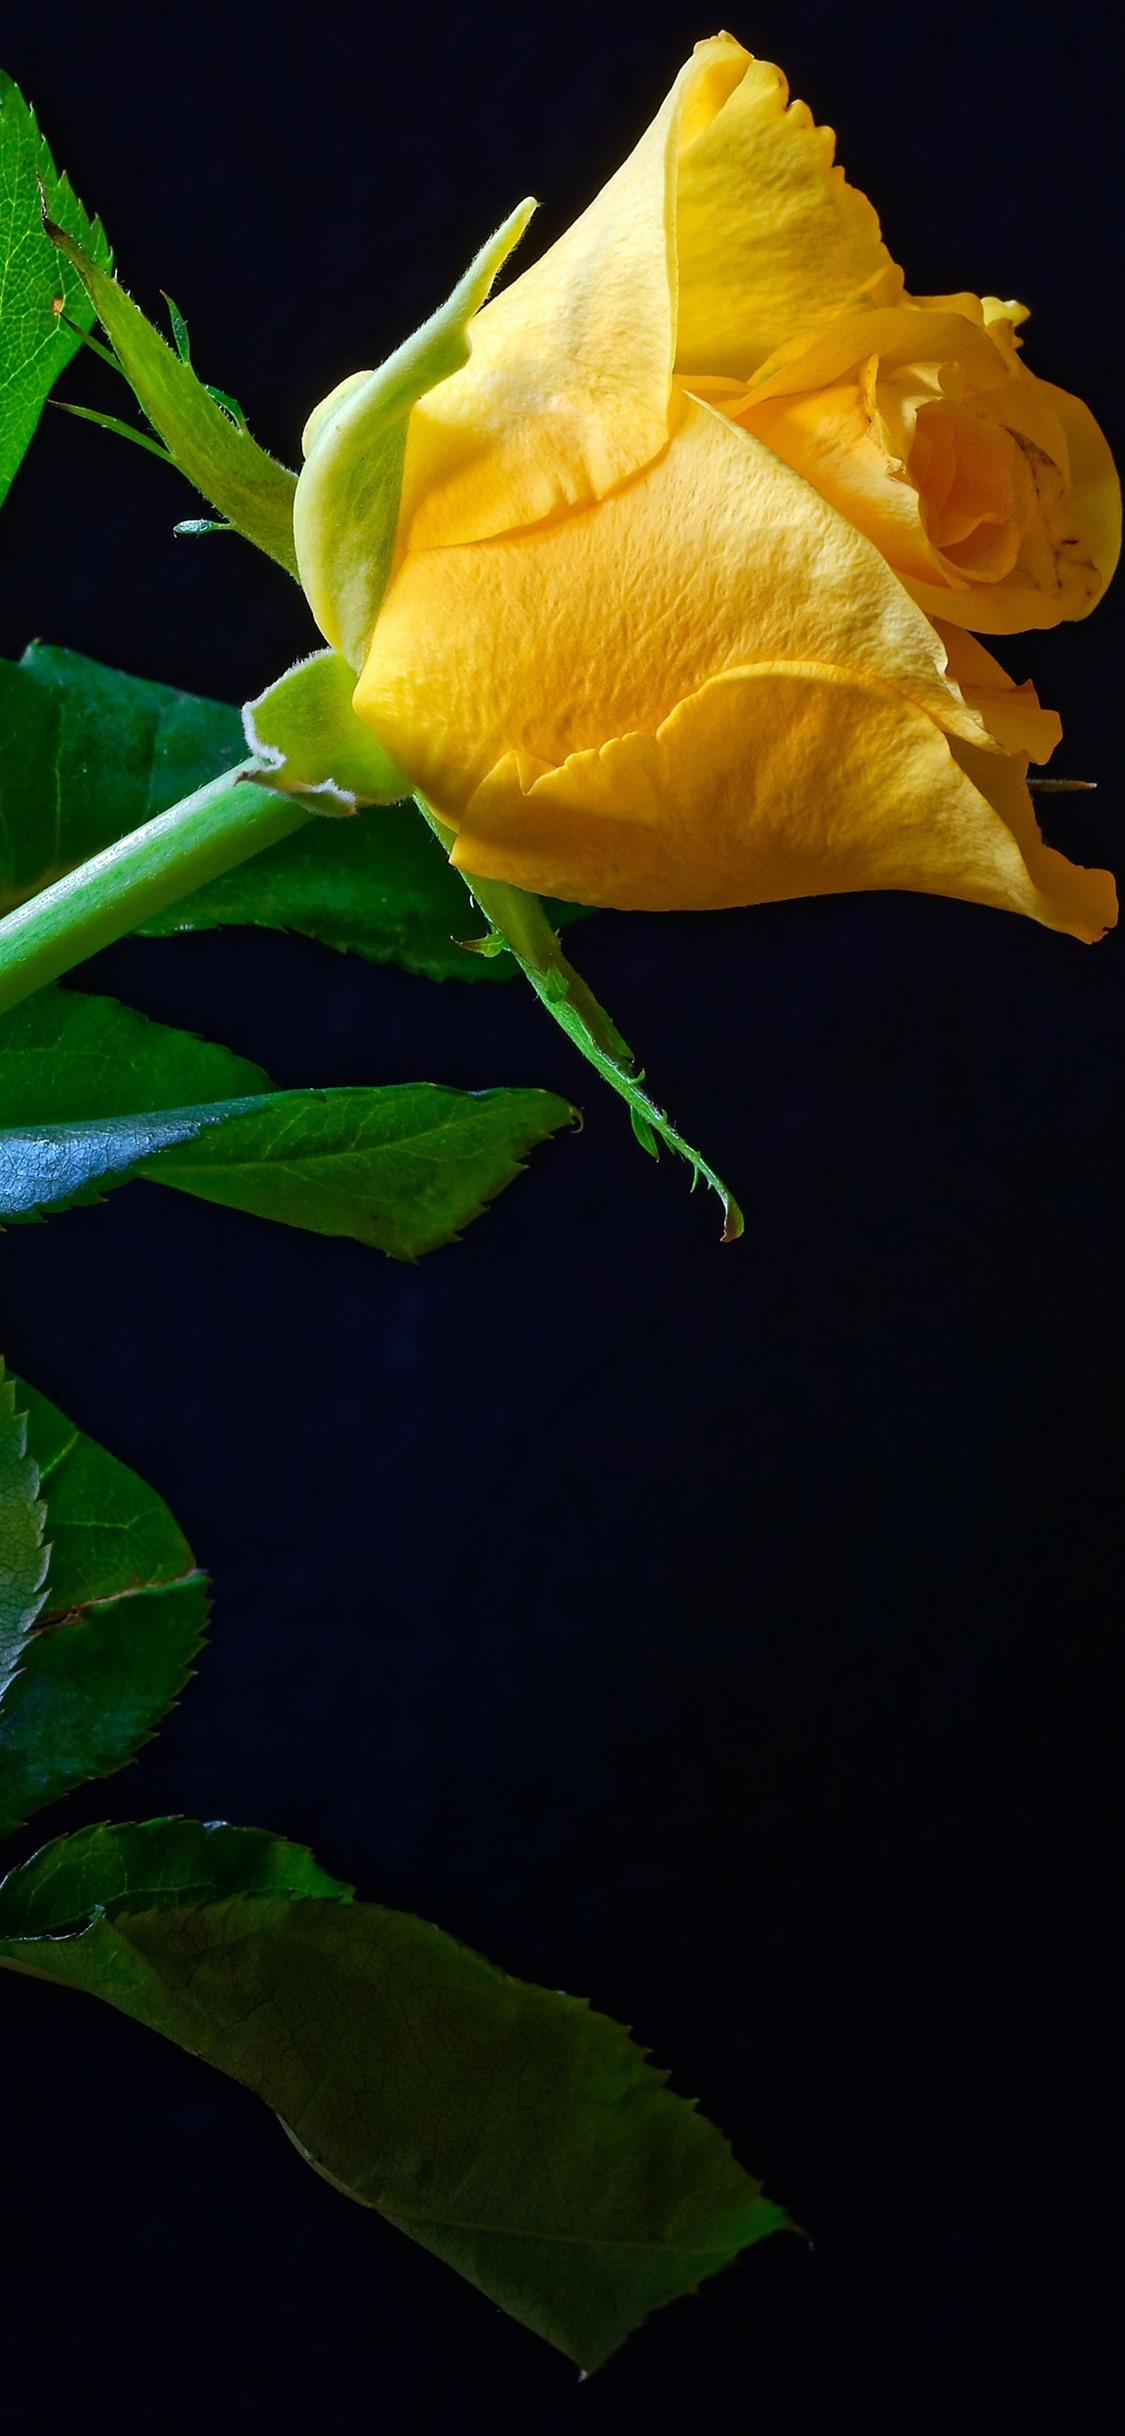 One Yellow Rose Green Foliage Black Background 1125x2436 Iphone 11 Pro Xs X Wallpaper Background Picture Image